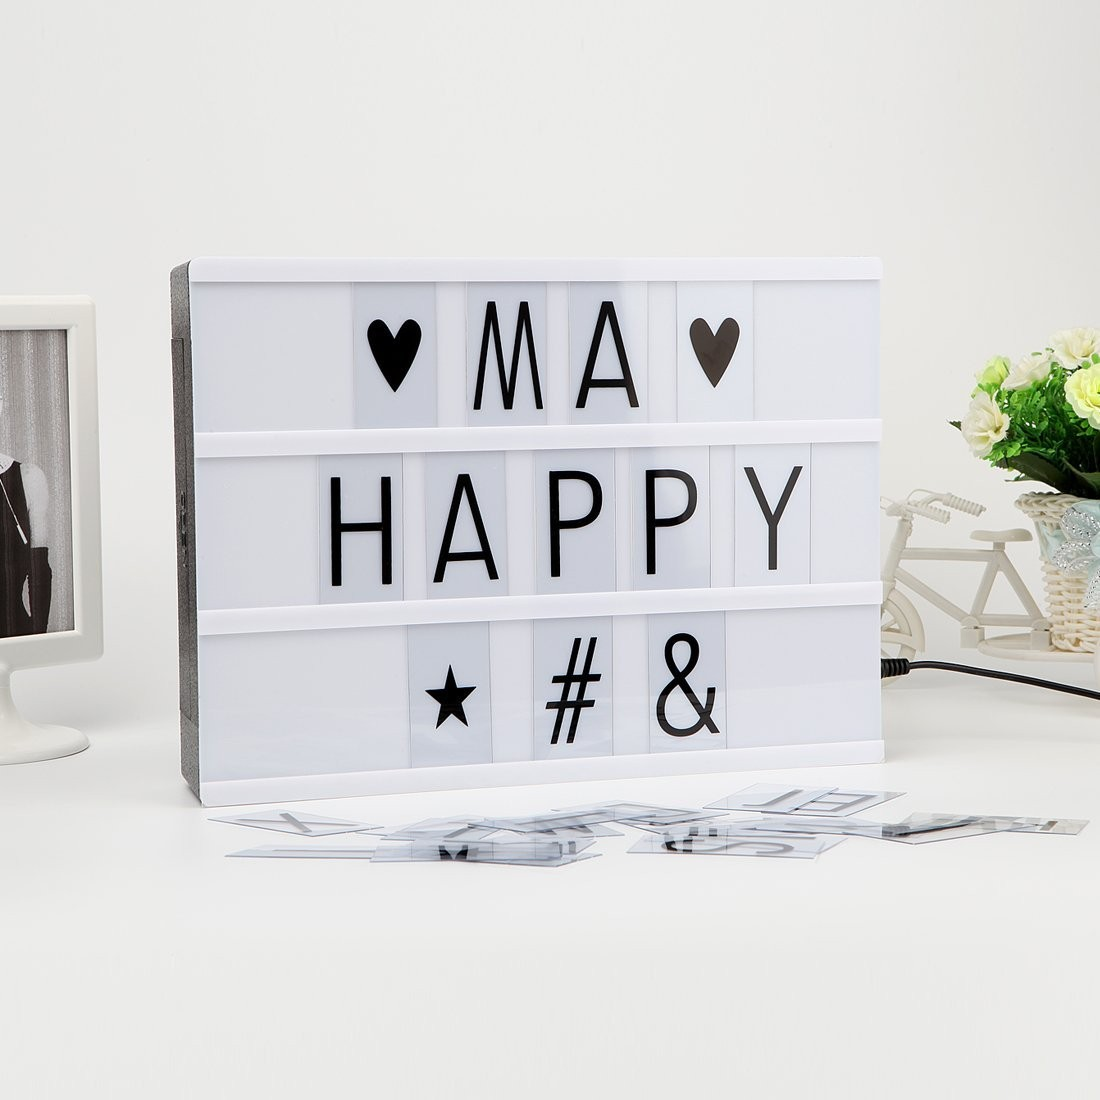 leuchtkasten led lightbox 22 x 30cm 85 buchstaben a4 lovely kaufen. Black Bedroom Furniture Sets. Home Design Ideas